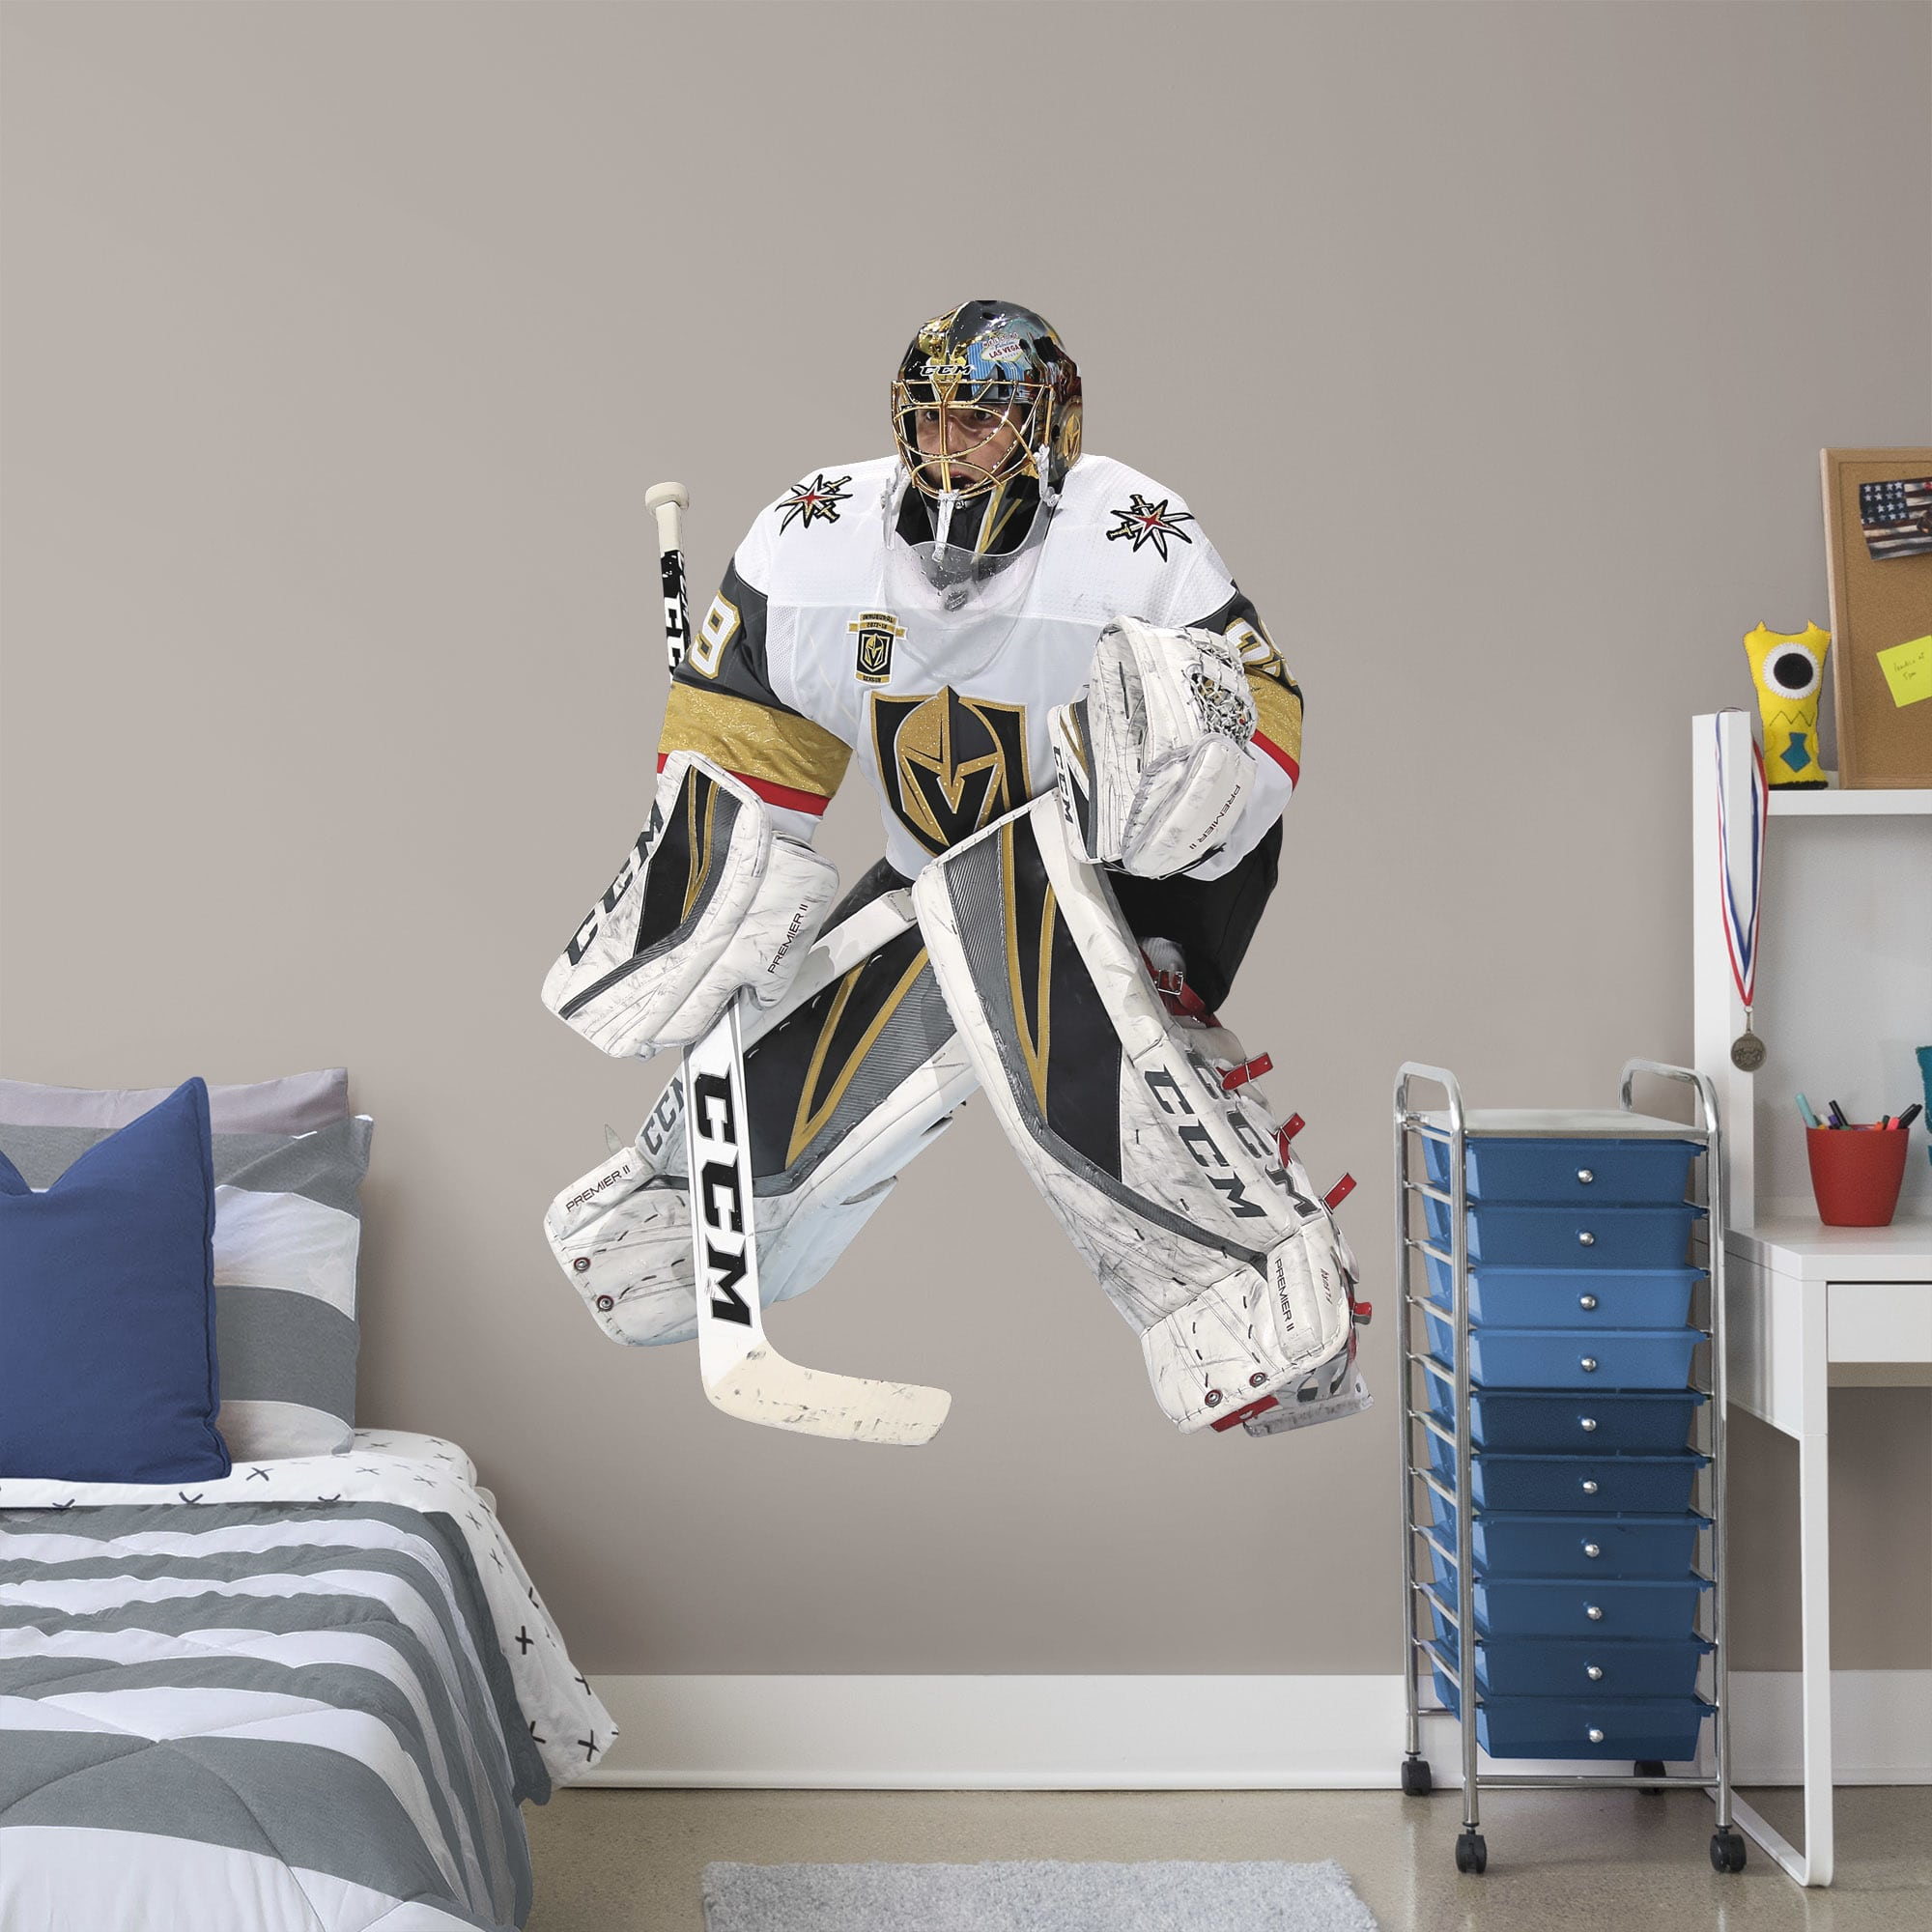 Fathead Marc Andre Fleury Life Size Officially Licensed Nhl Removable Wall Decal Walmart Com Walmart Com